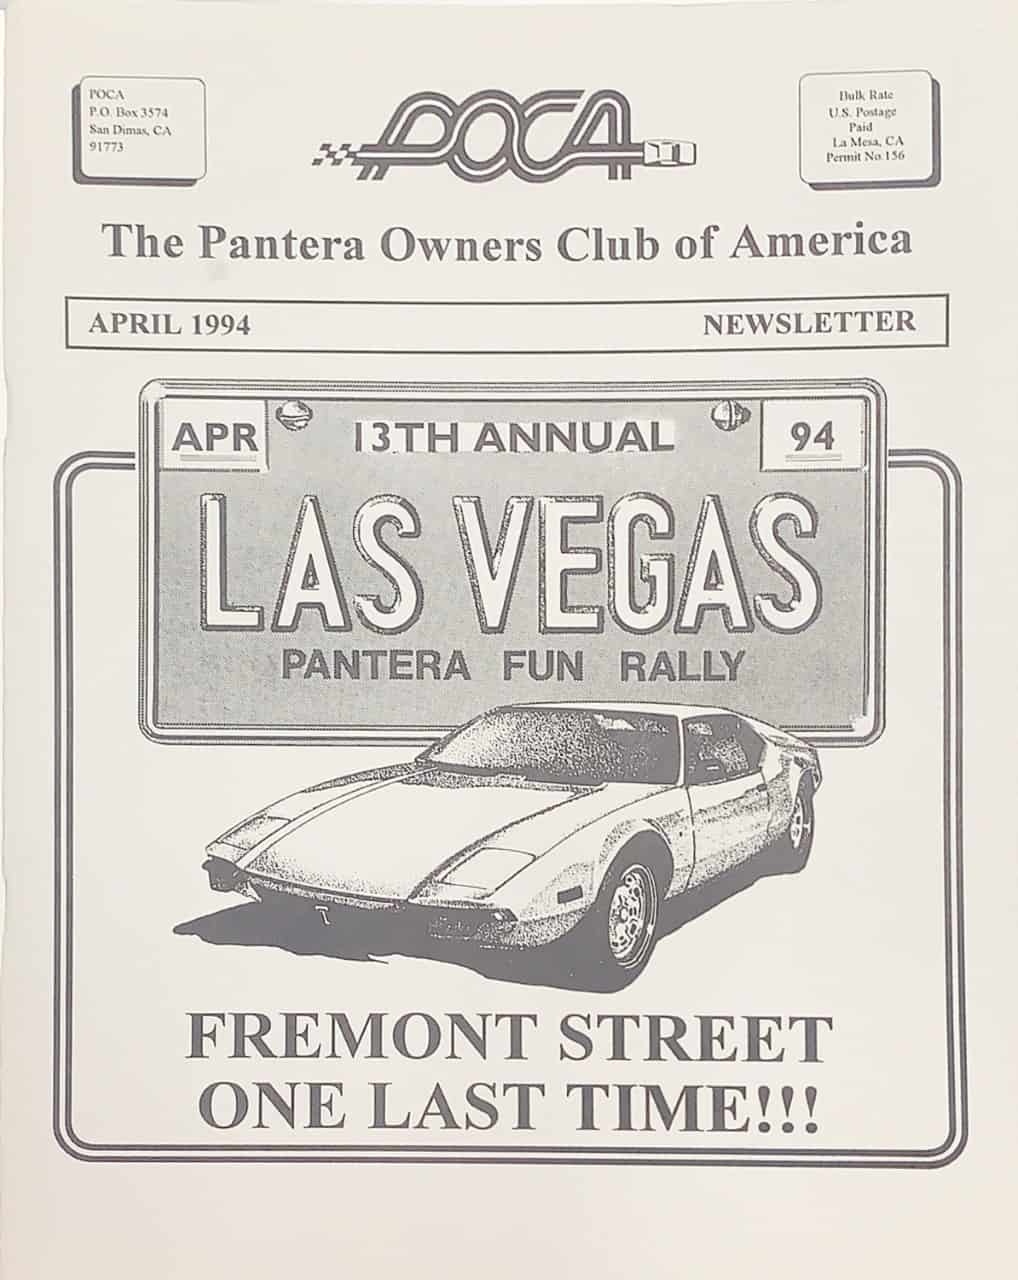 Pantera Club newsletter